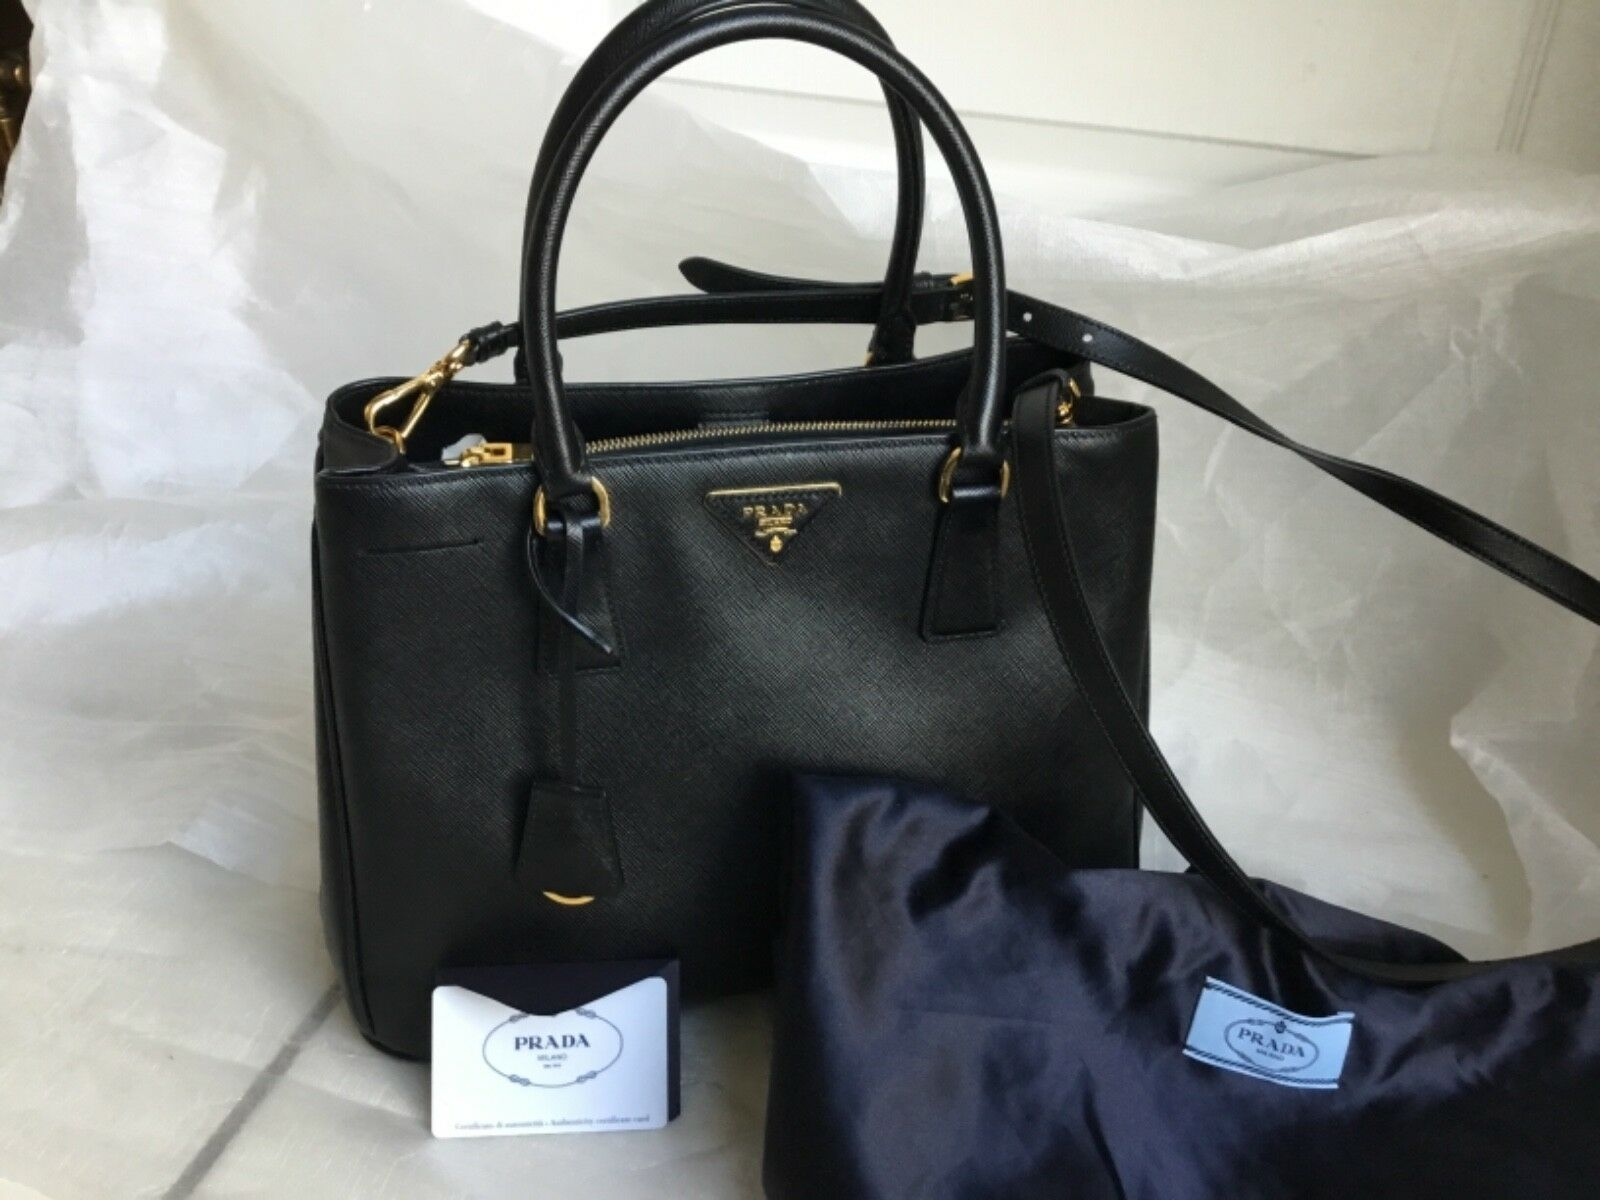 PRADA Lux Saffiano Leather Tote - Black for sale online  8bd6a6794a885